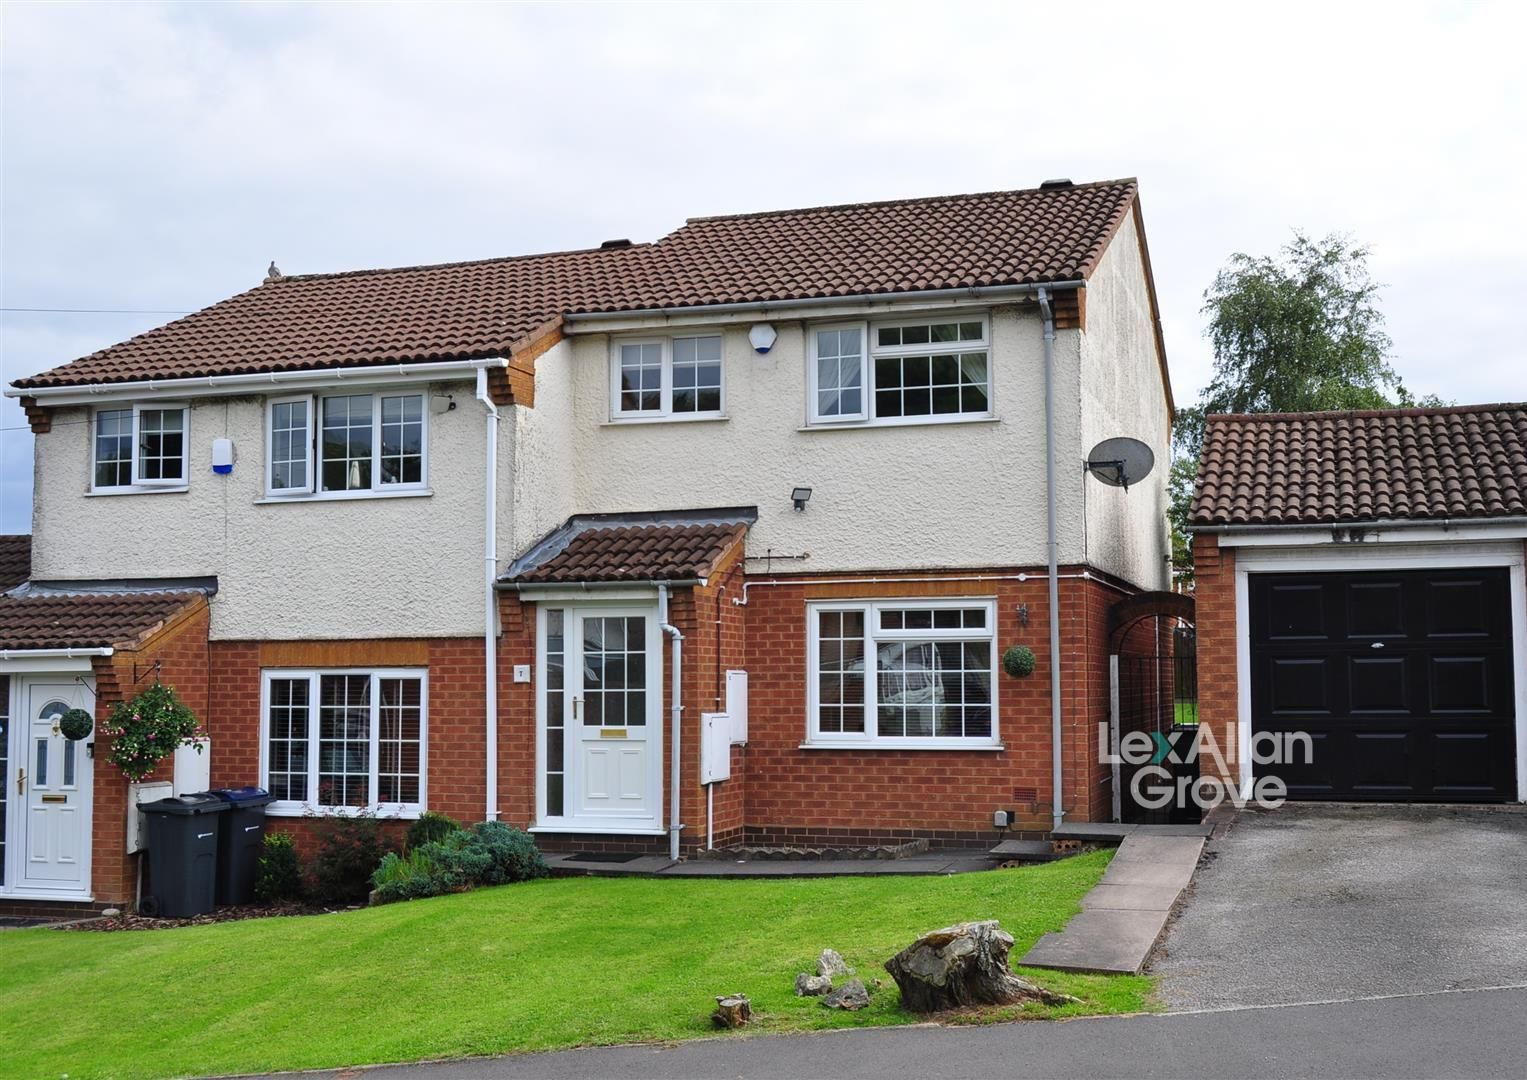 3 bed semi-detached for sale in Bartley Green, B32